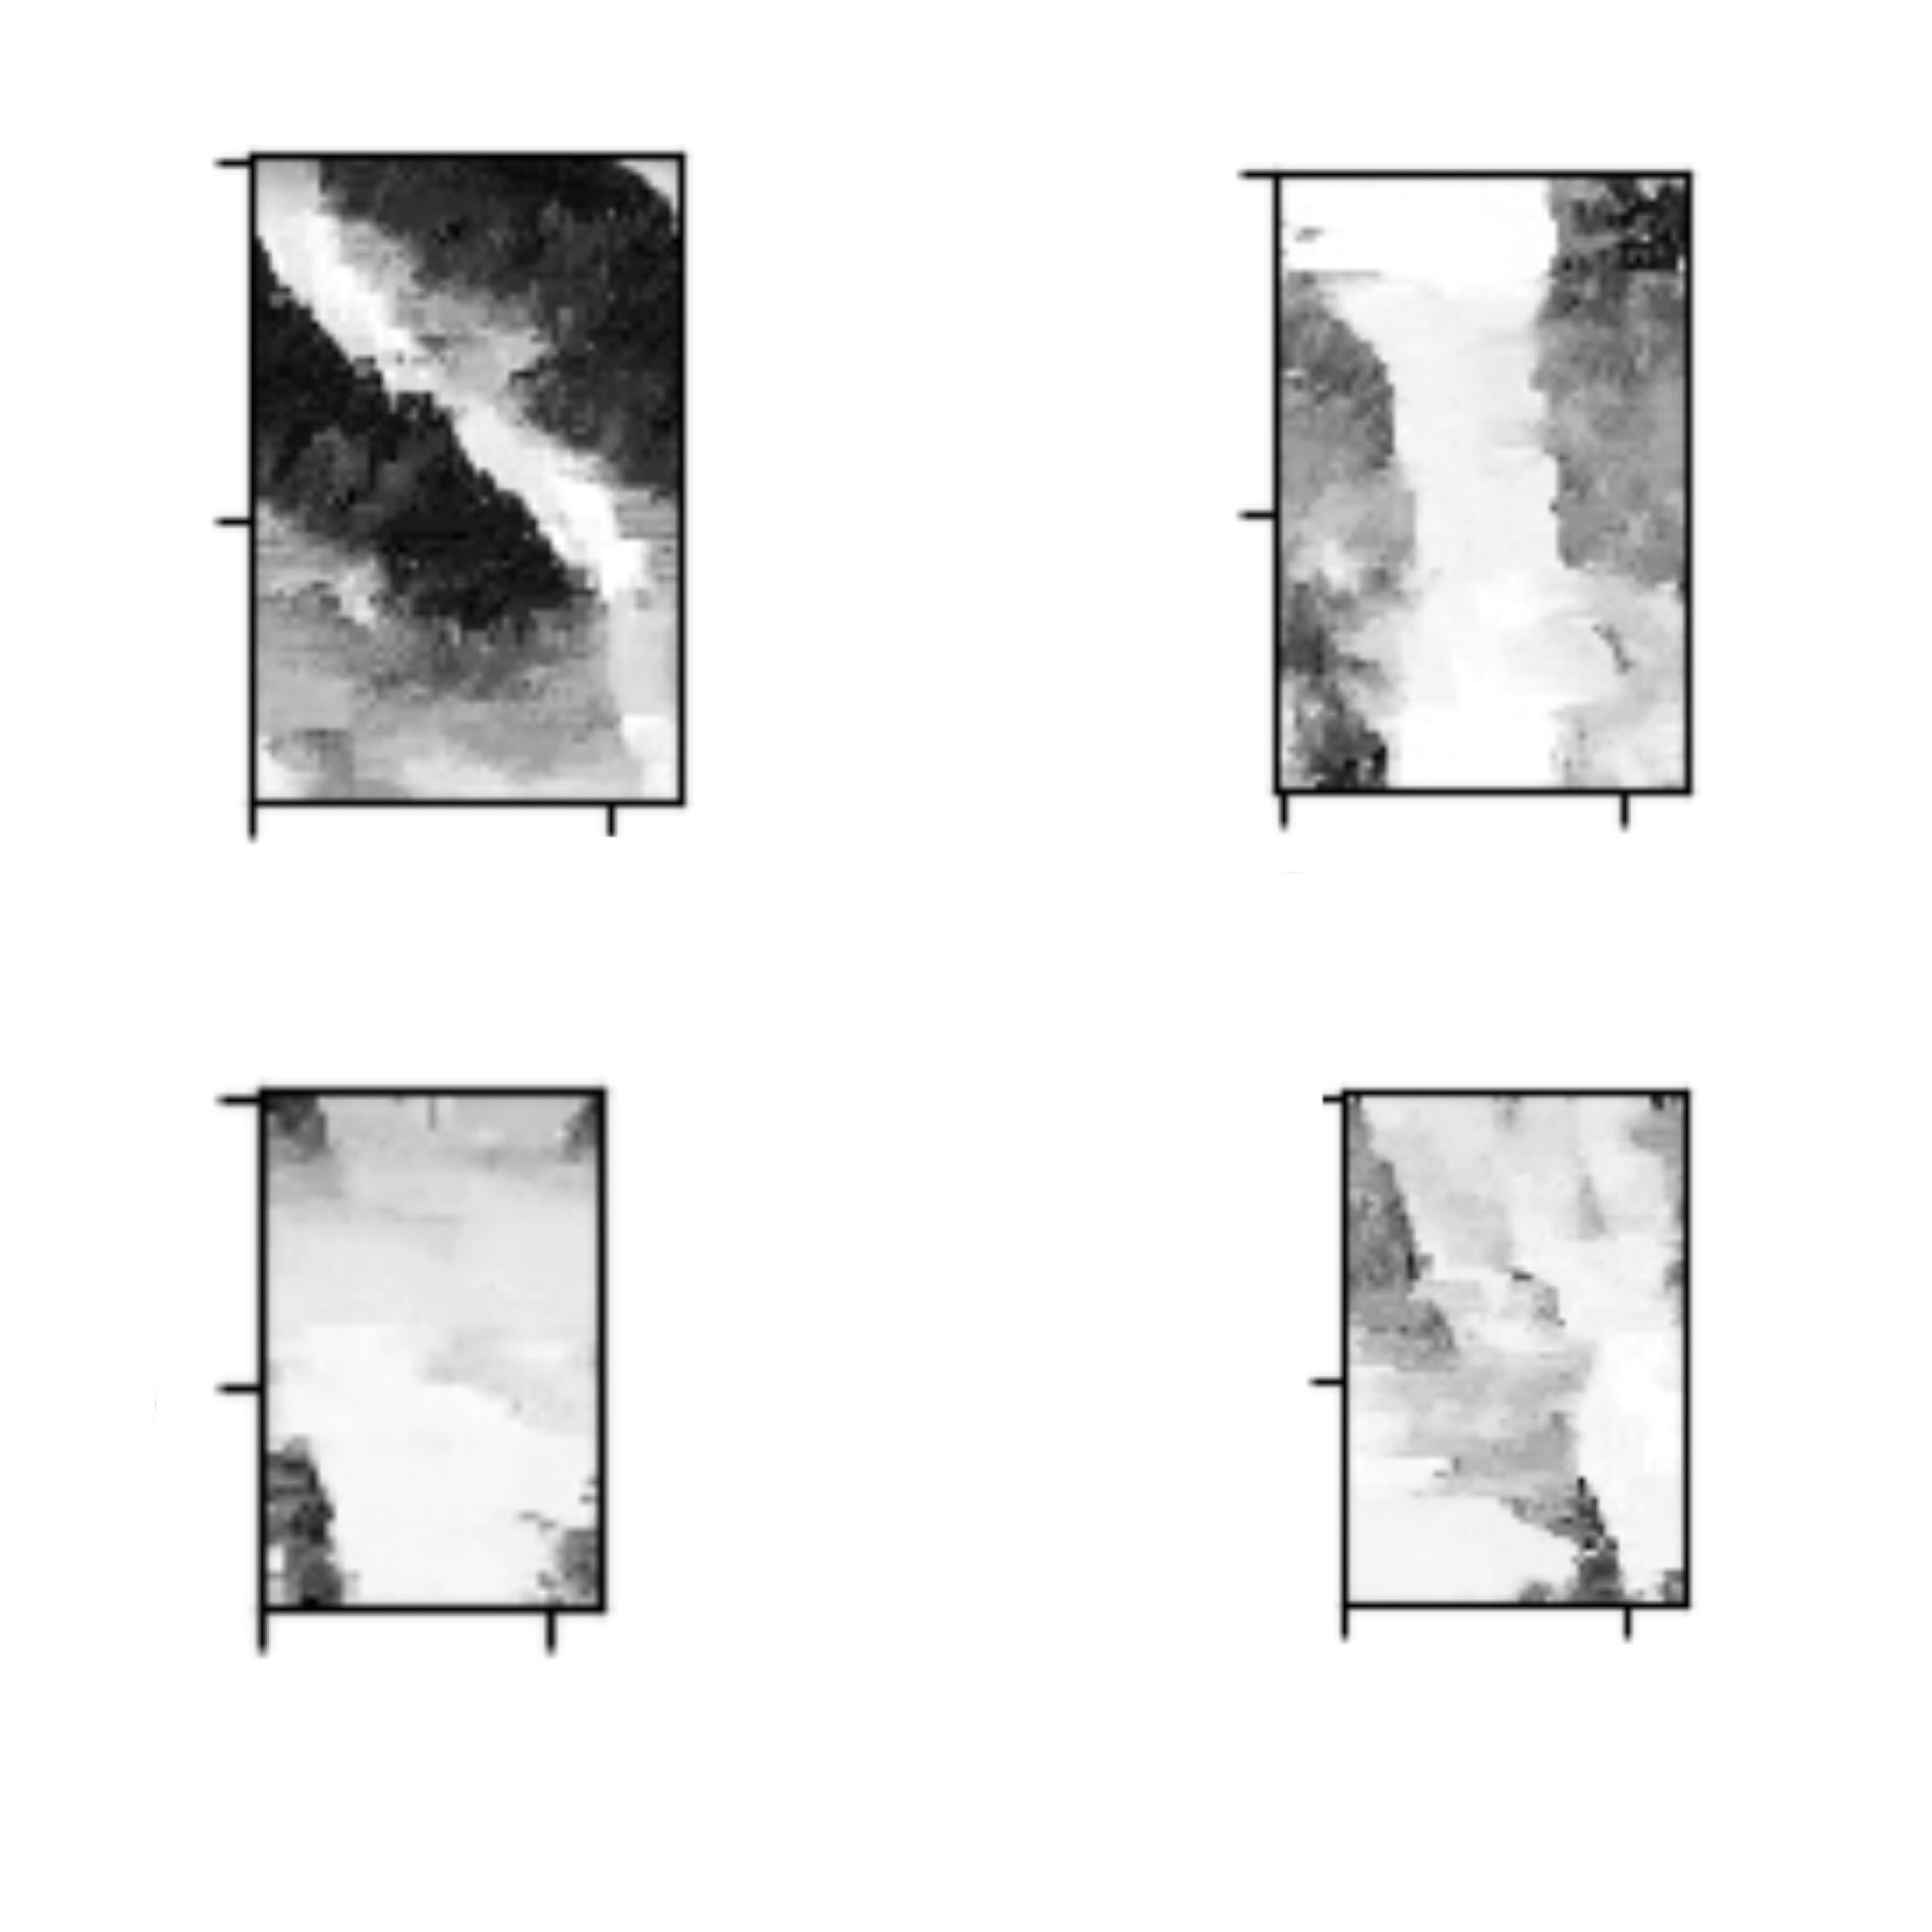 Samples of  grayscale_rnn's  output after approximately 1000 training epochs